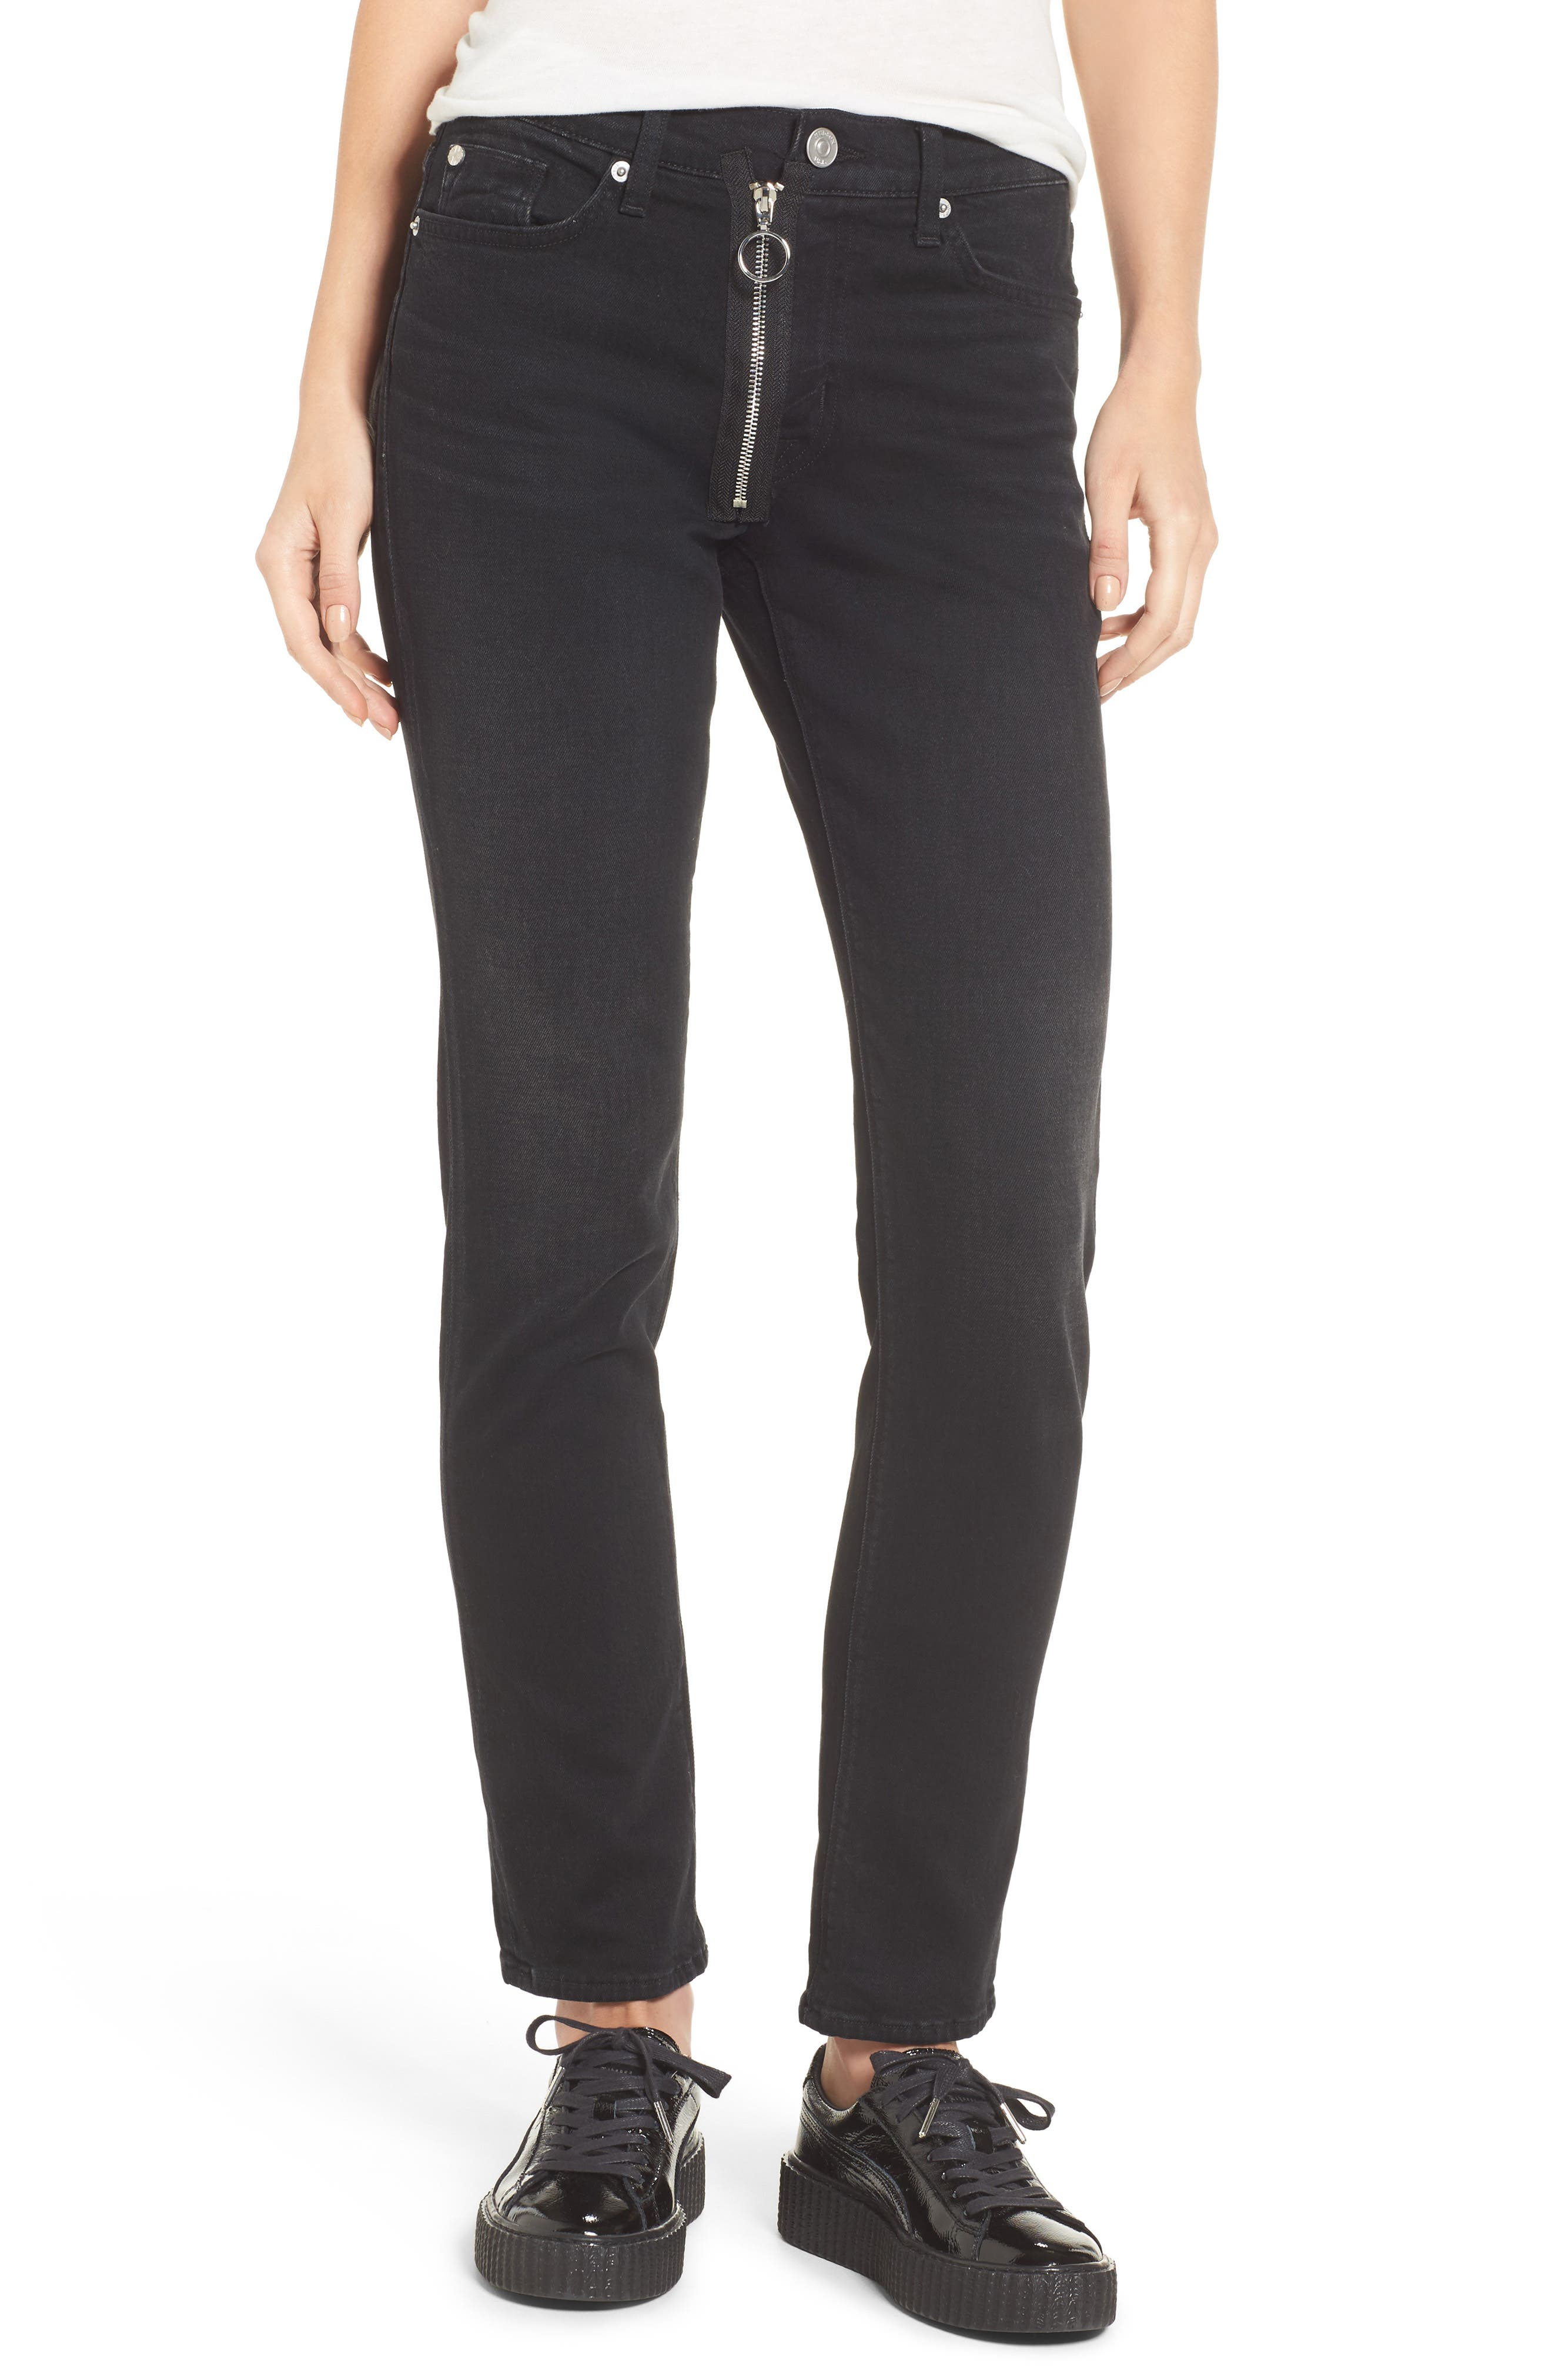 Riley Relaxed Straight Fit Jeans,                             Main thumbnail 1, color,                             001